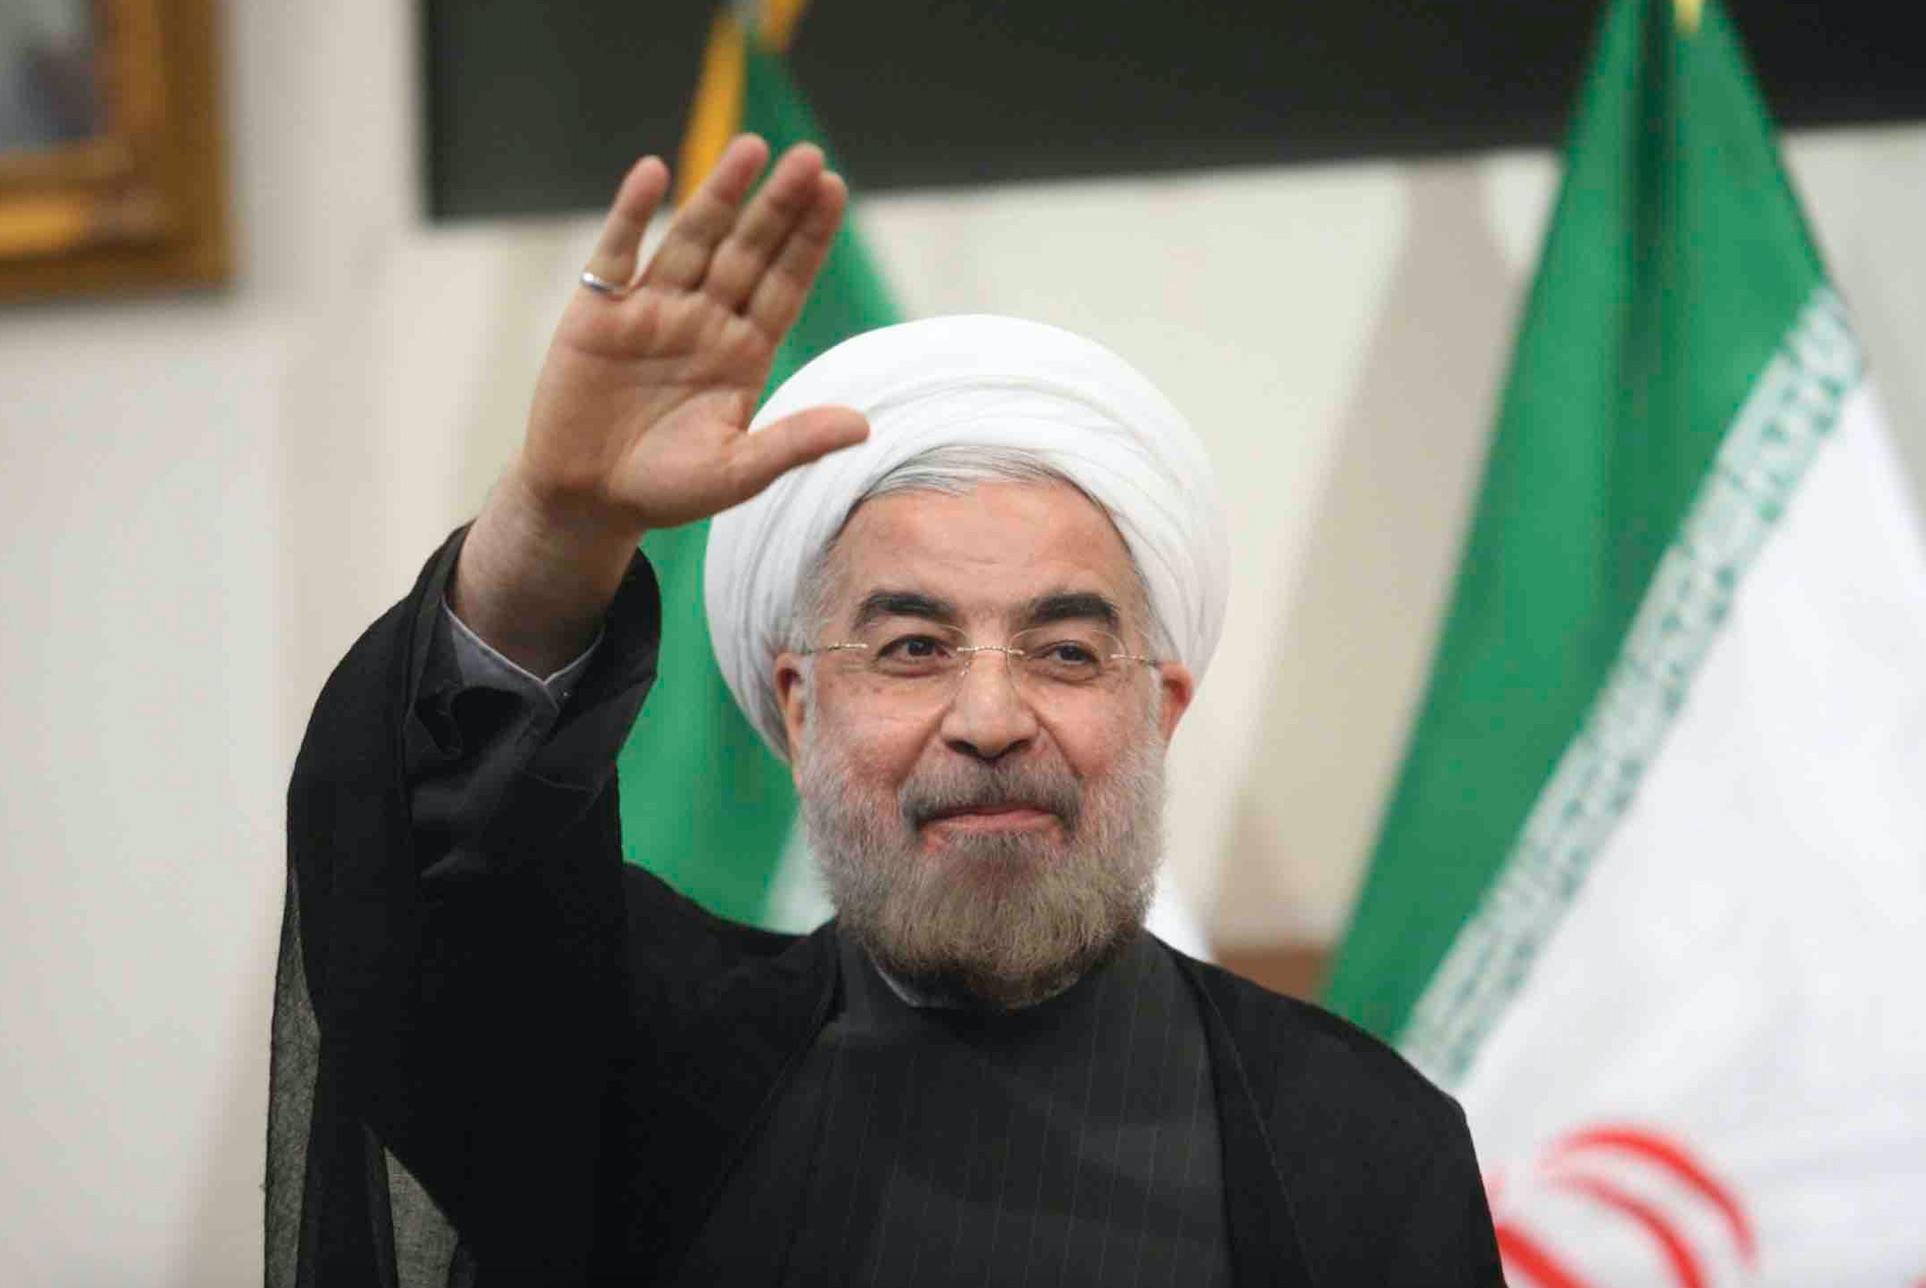 Reformists in Iran Celebrate as Rouhani Cruises to Comfortable Victory With 57% of Votes